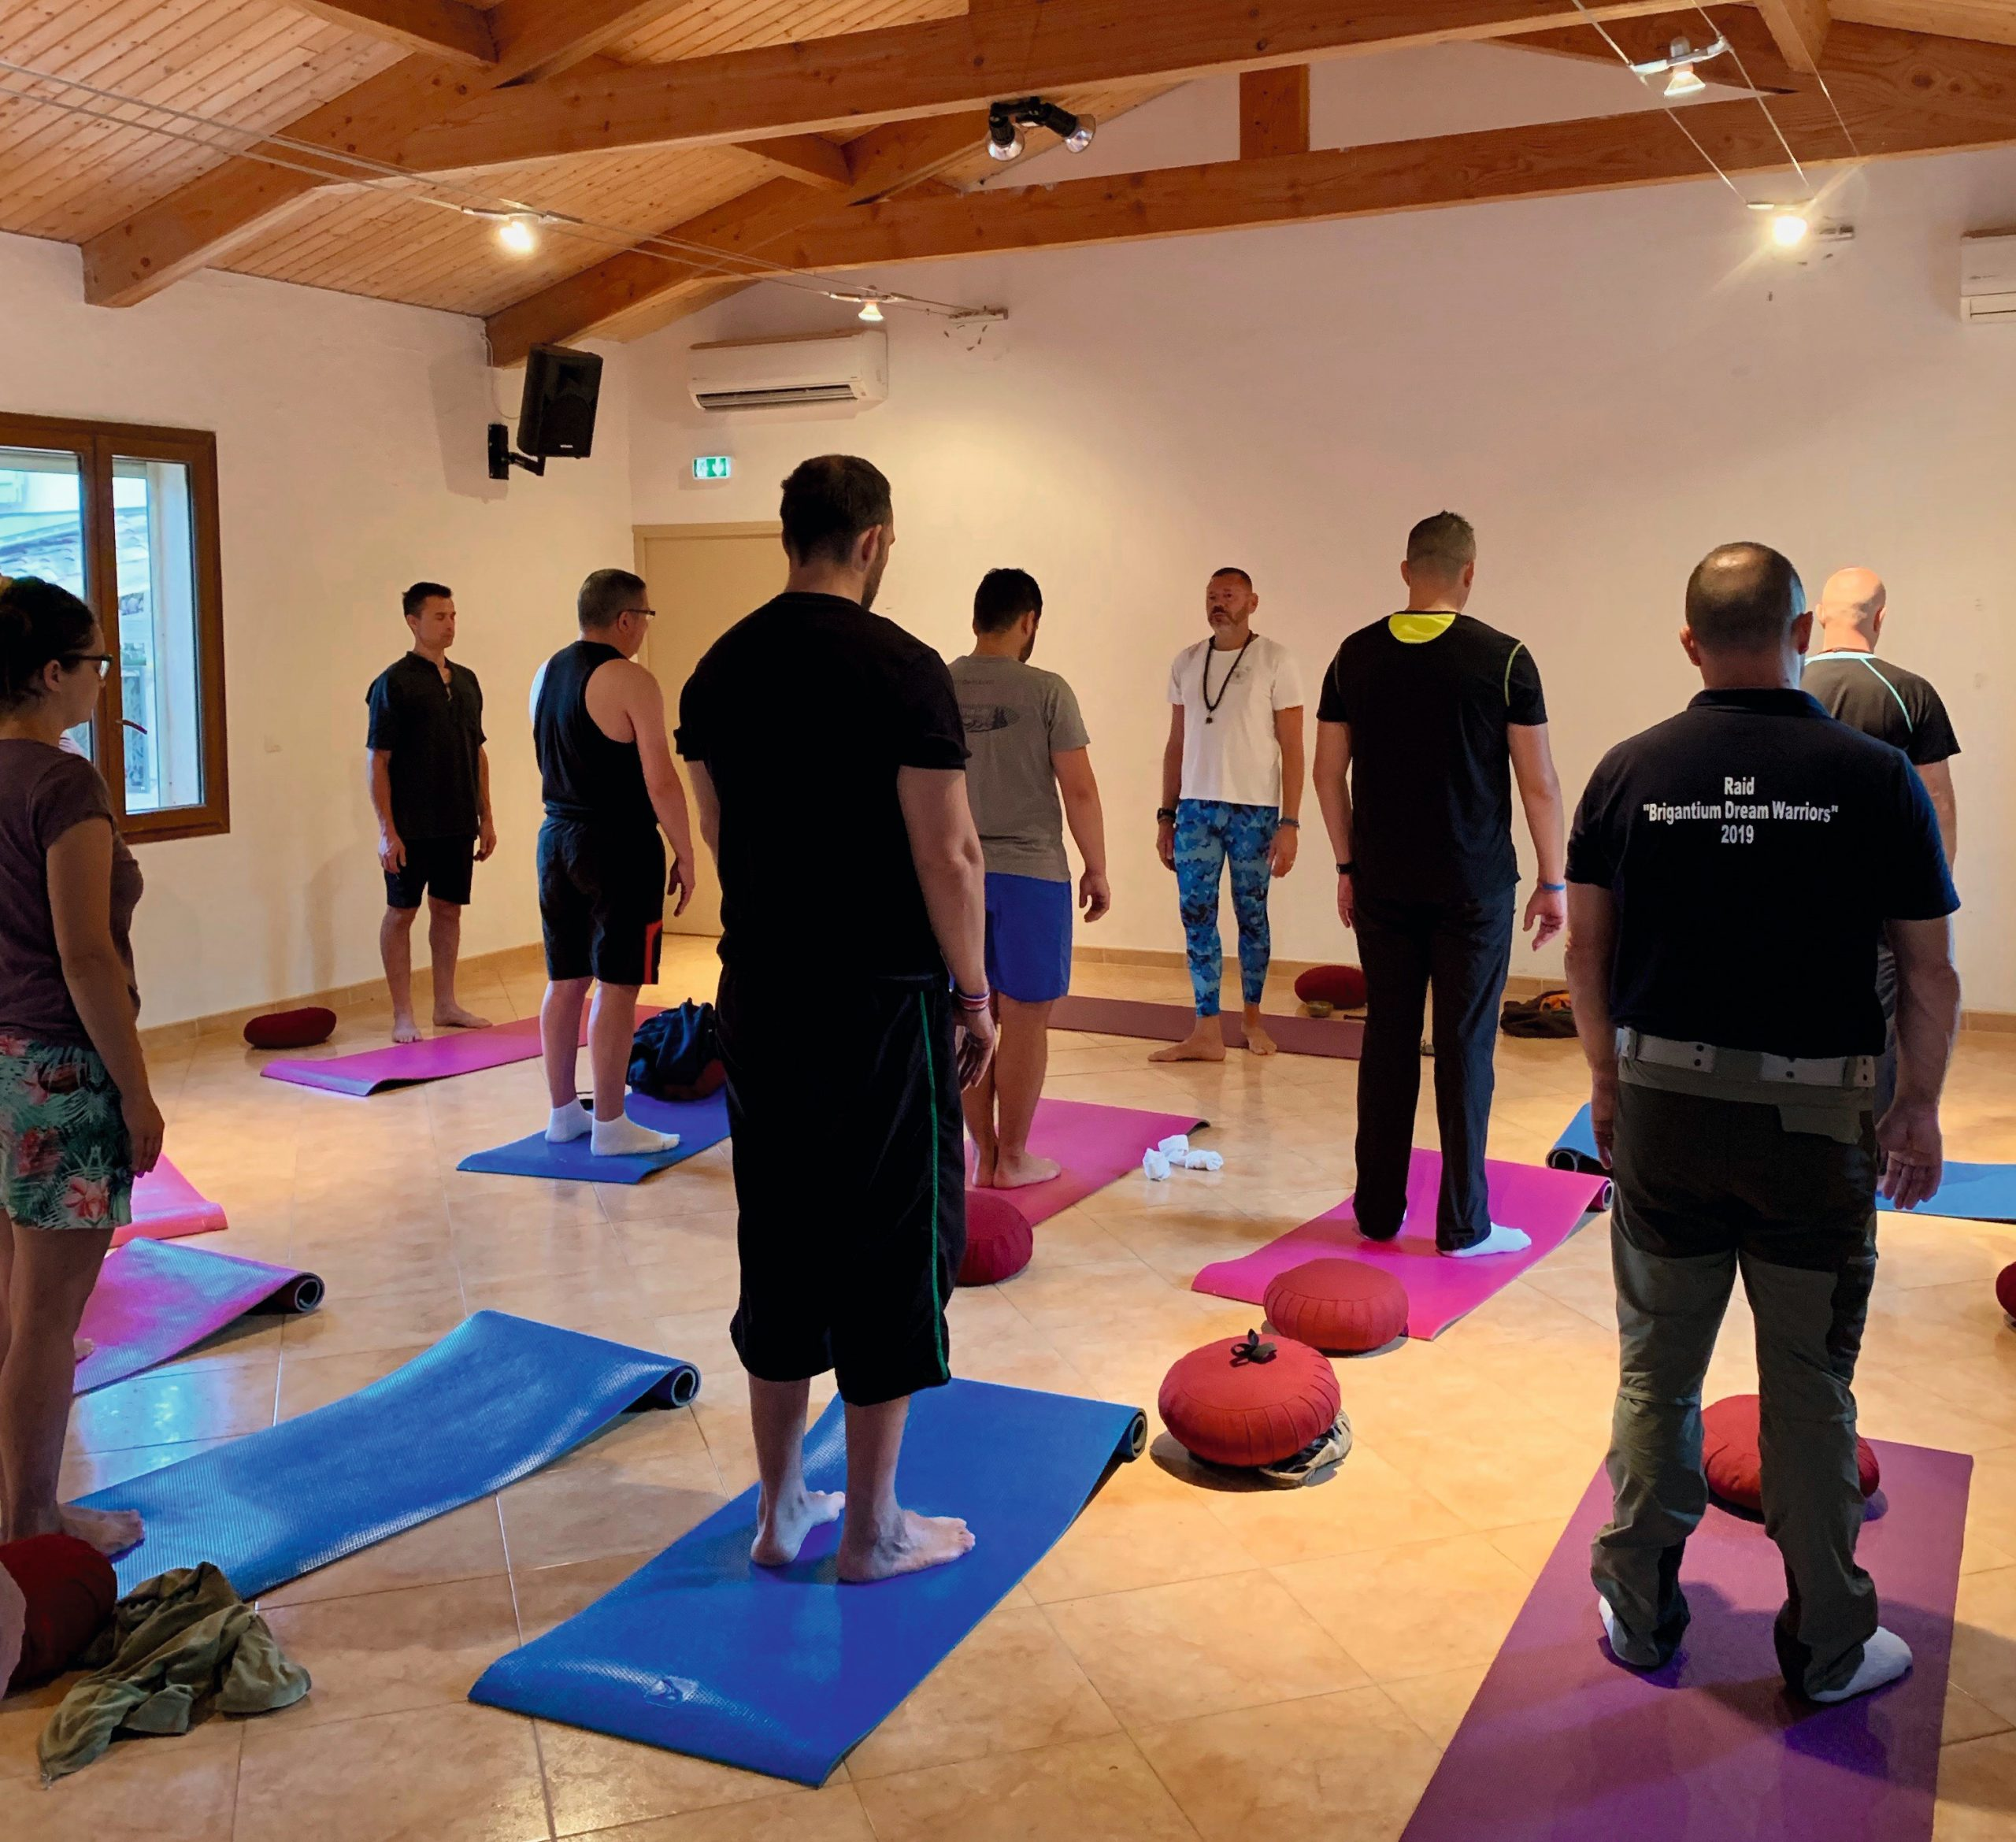 Page OBJECTIFS 2019 – Saint-Honorat – YOGA